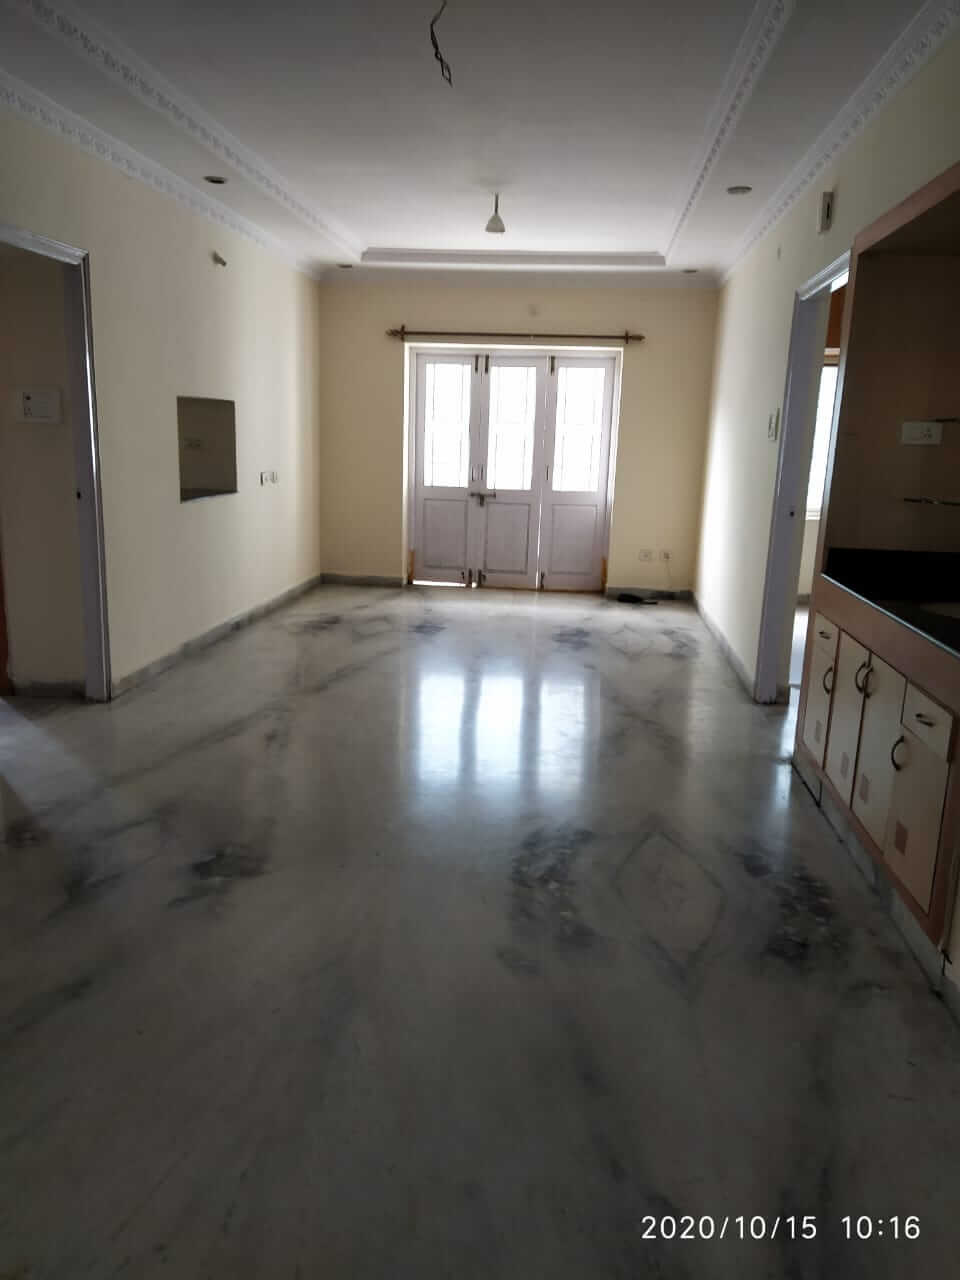 3 BHK Apartment / Flat for Rent 1700 Sq. Feet at Hyderabad